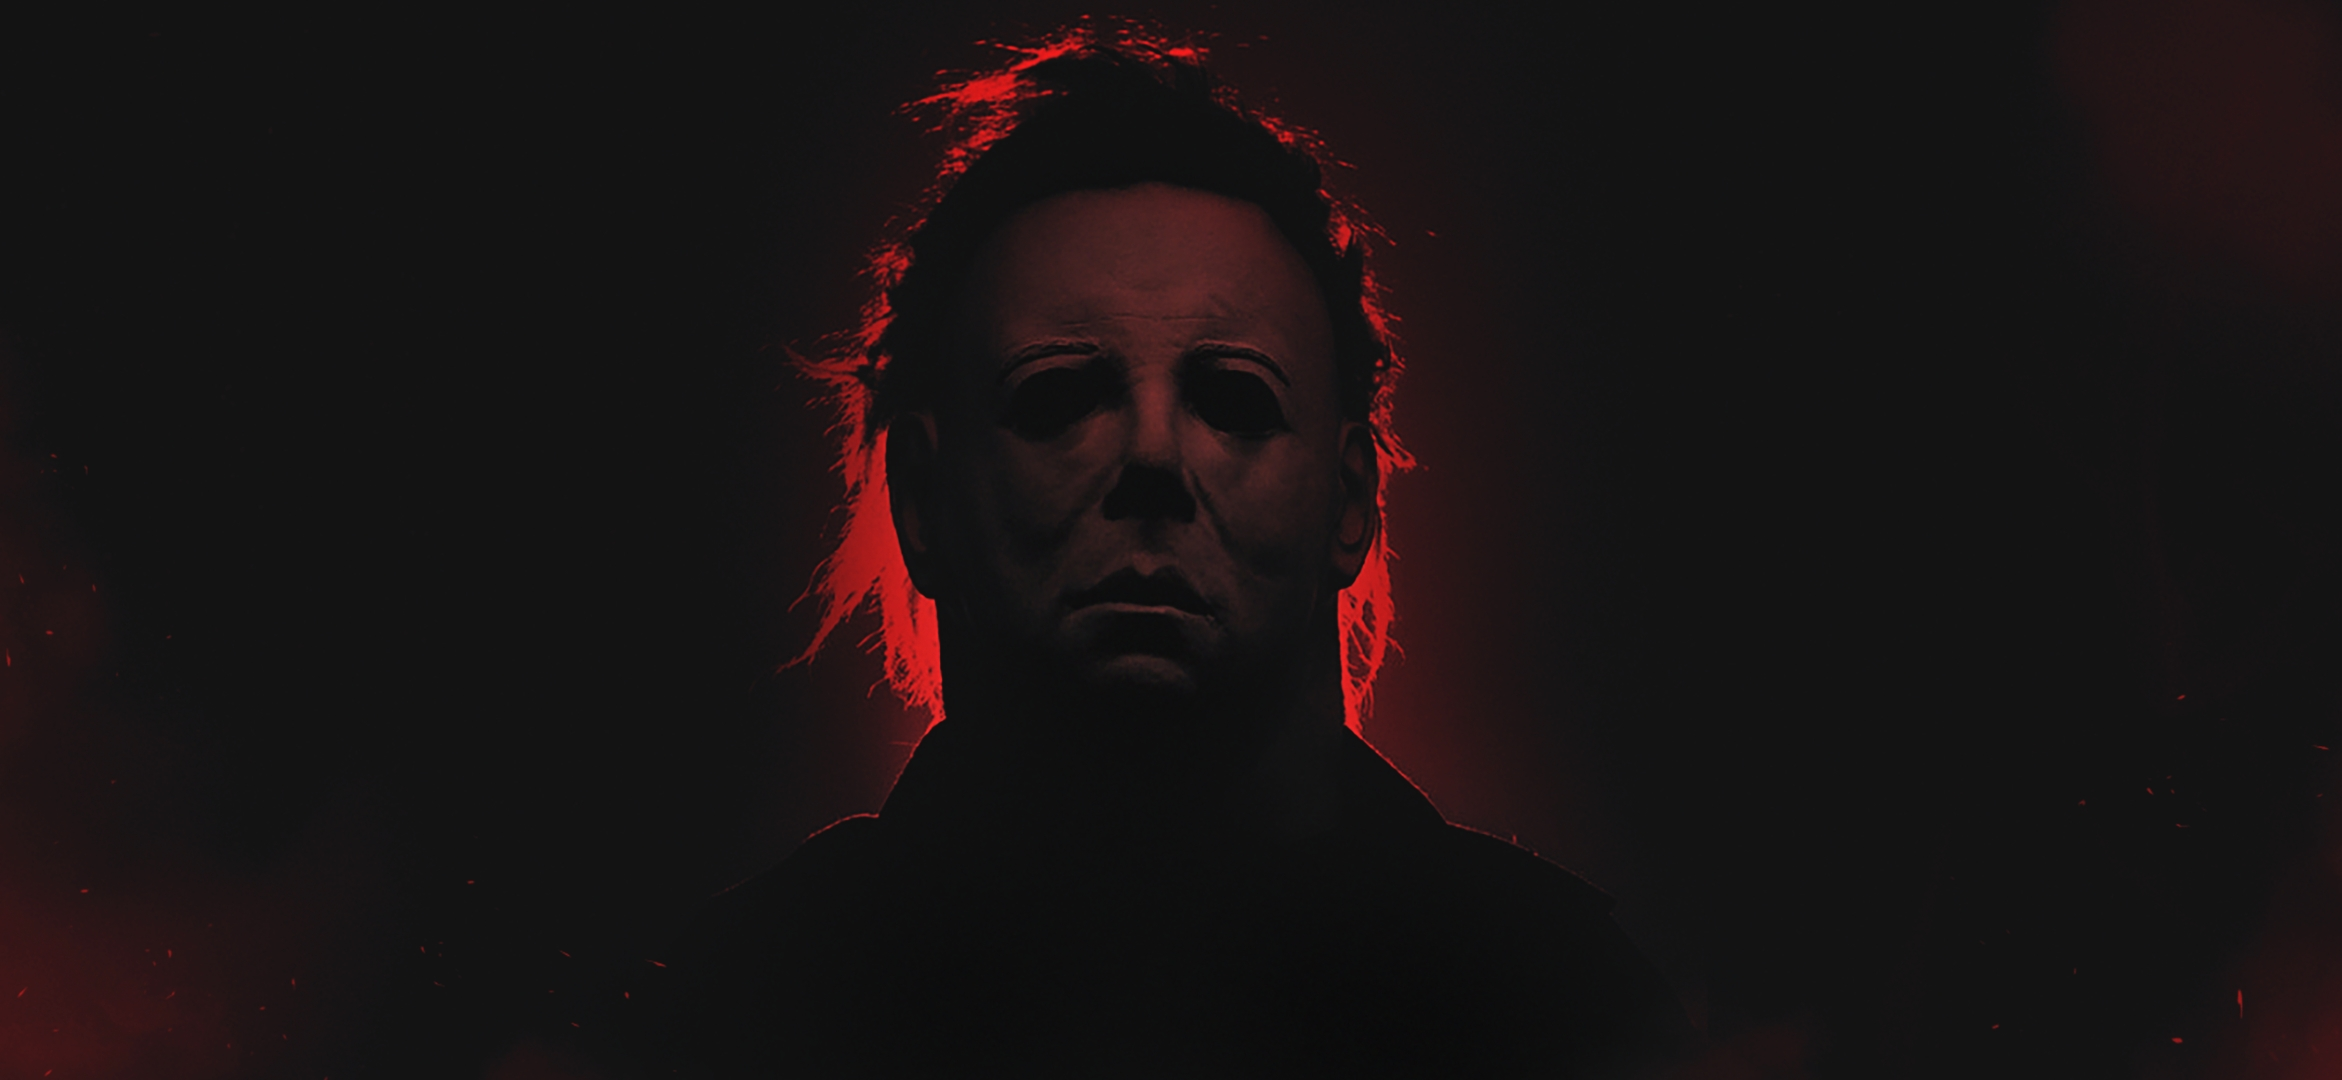 michael myers nightmare full hd fond d'écran and arrière-plan